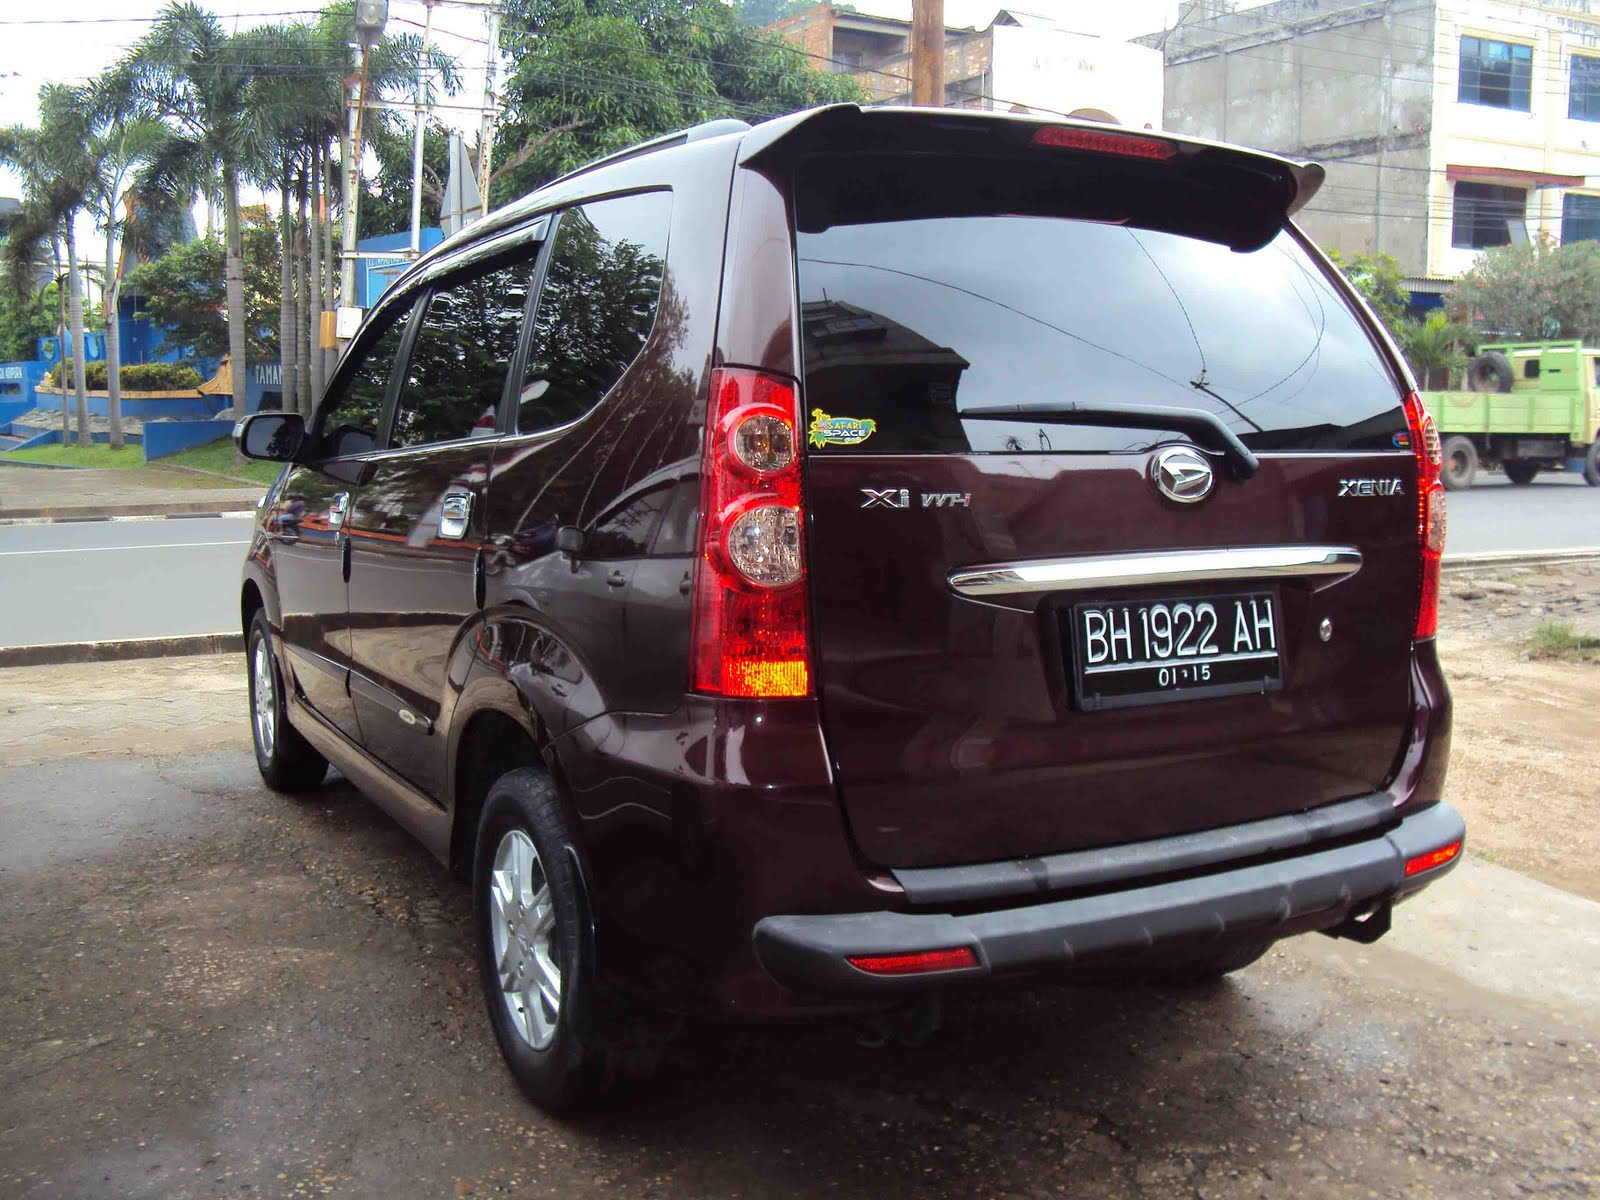 Console Box Grand New Avanza 2016 Brand Toyota Camry For Sale Philippines Mobil Bekas Jambi Xenia Xi Sporty Facelift 2010 Manual